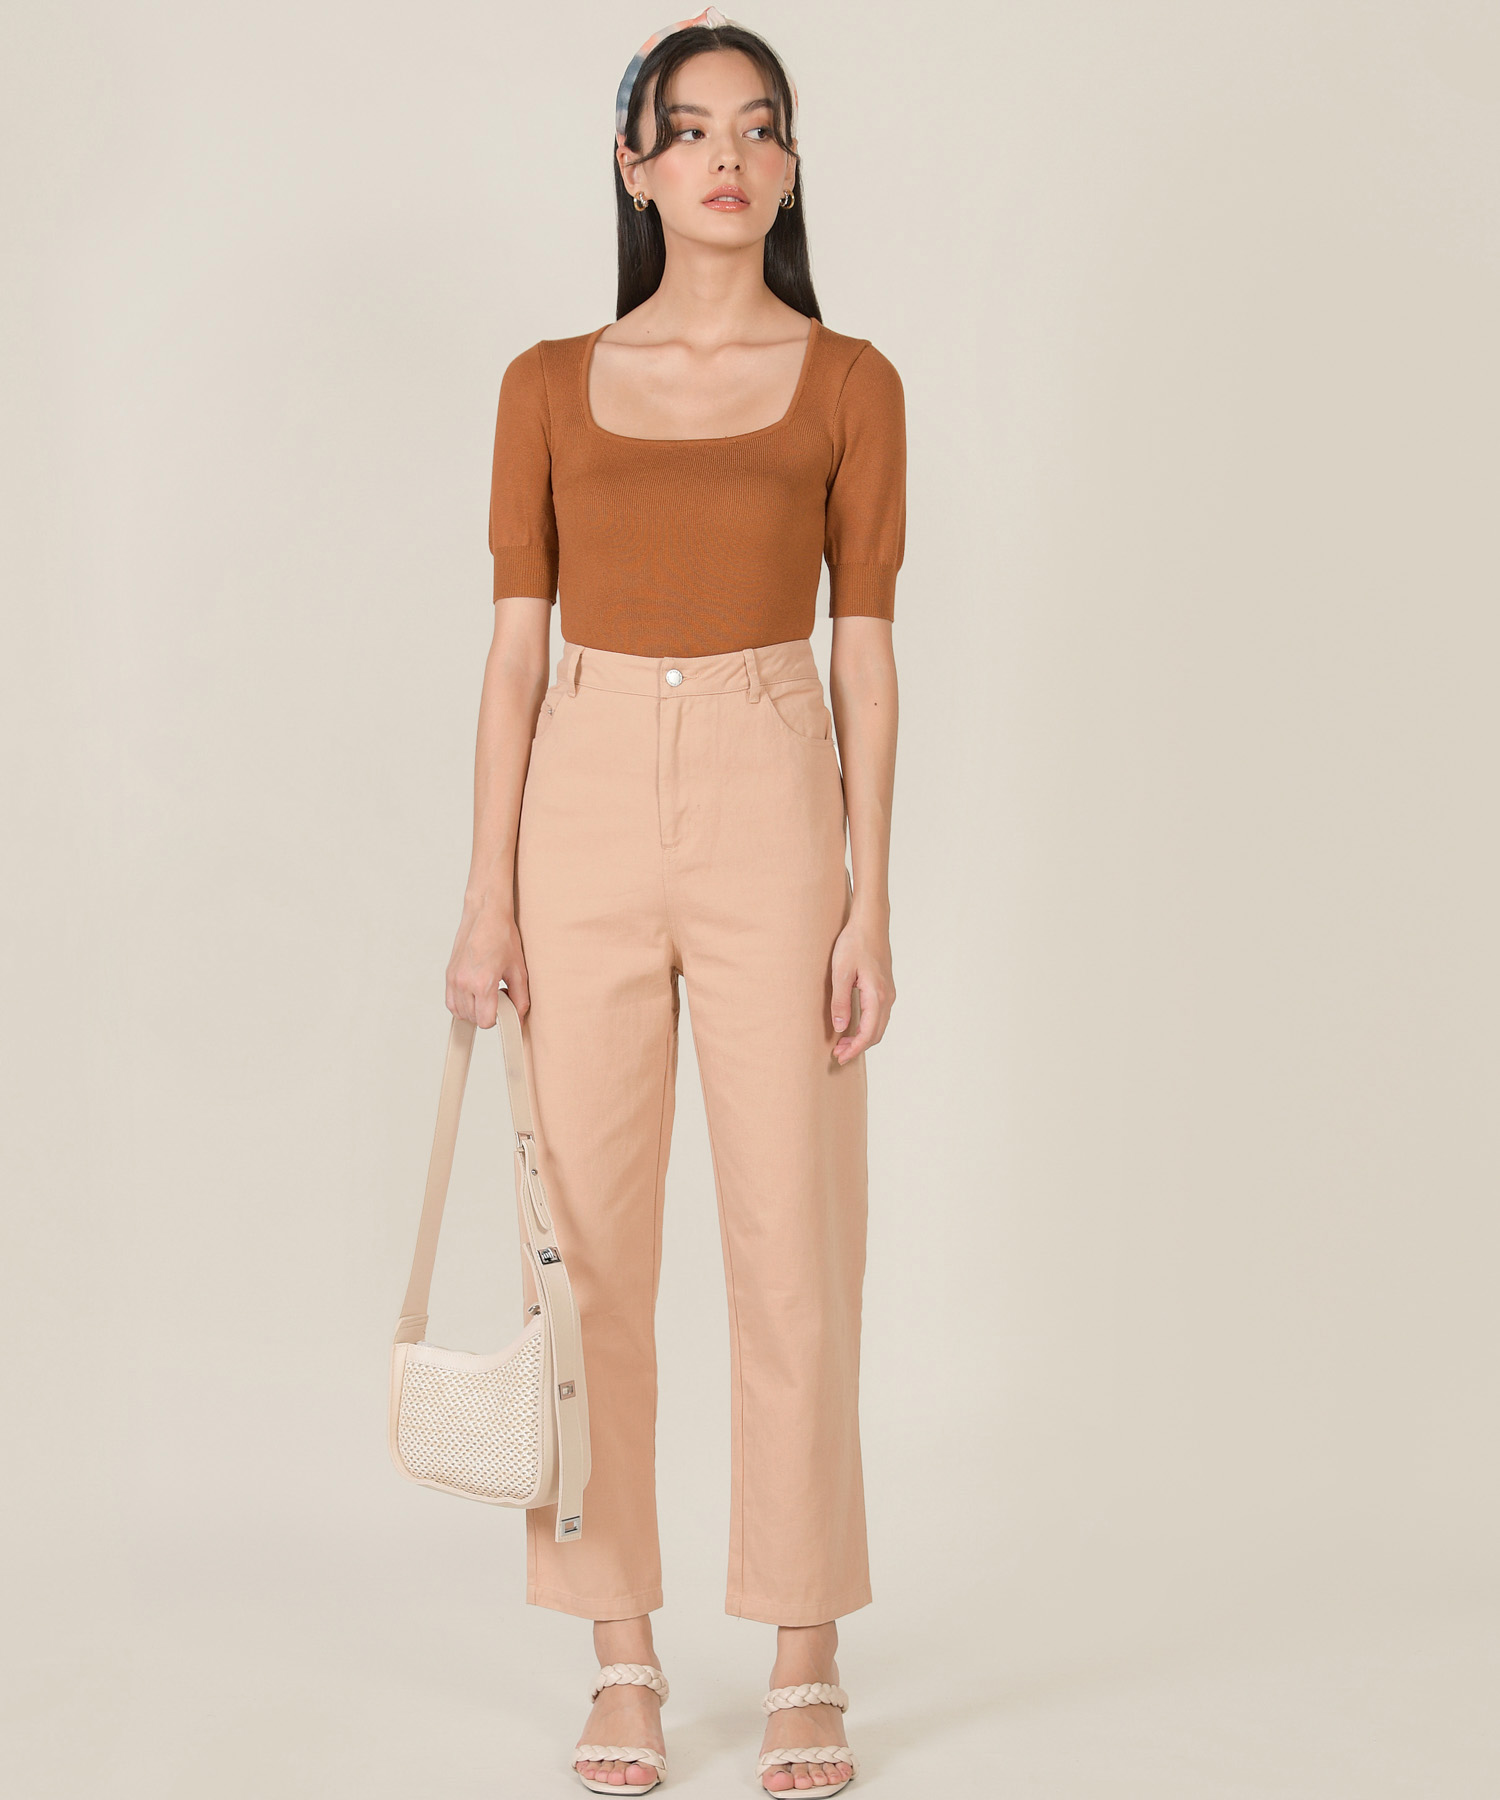 abrielle-trapeze-knit-top-ginger-brown-3